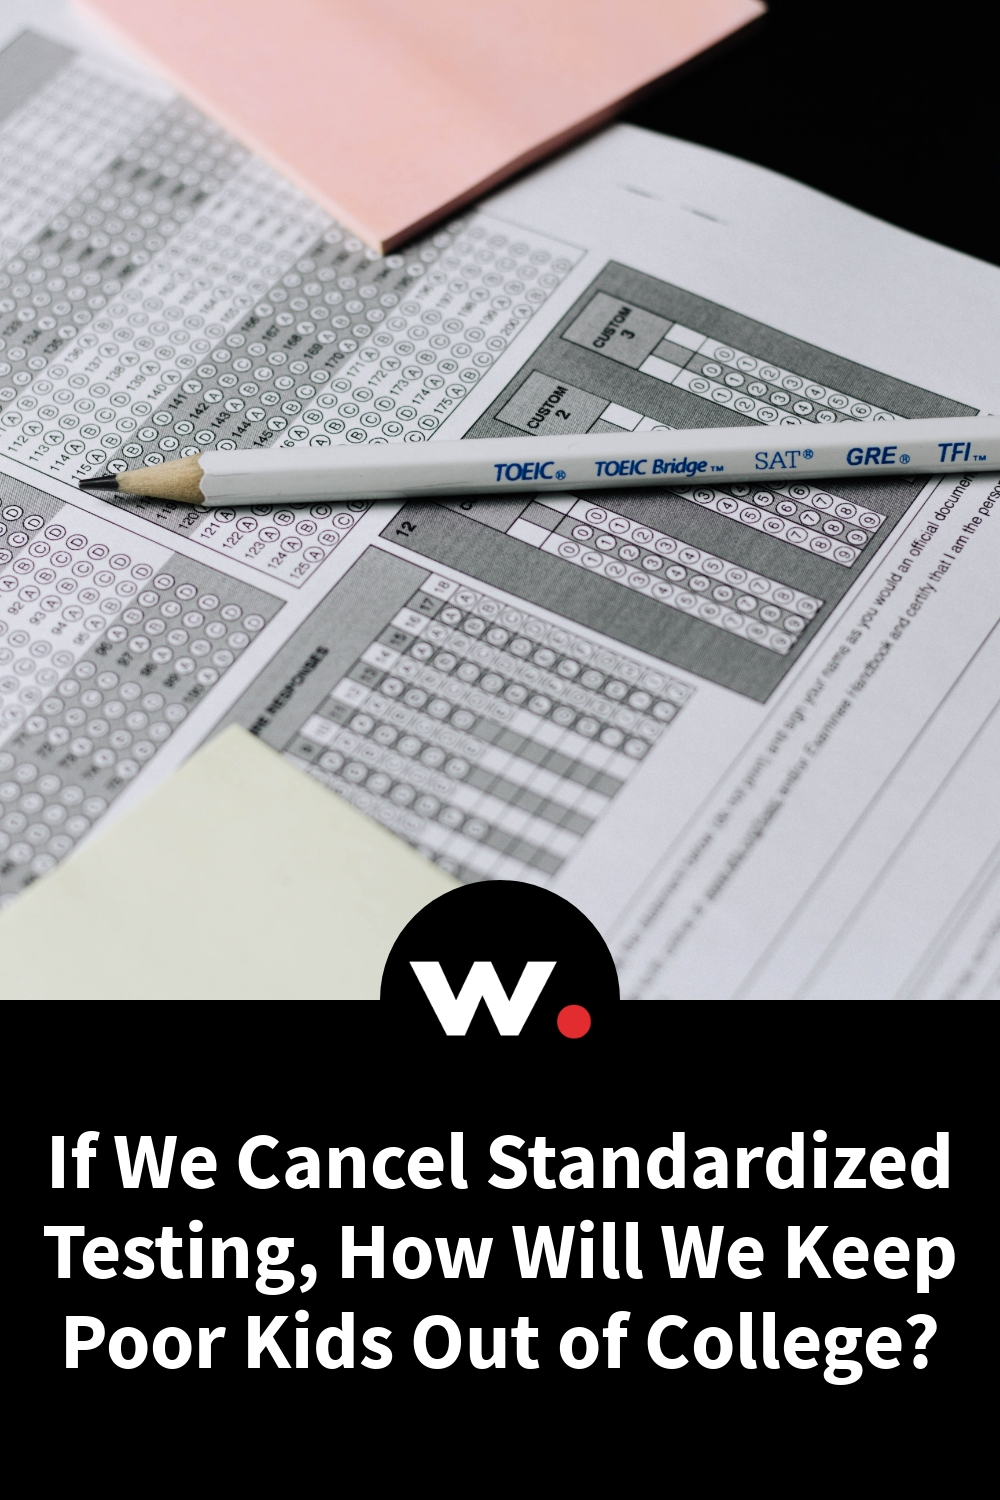 If We Cancel Standardized Testing, How Will We Keep Poor Kids Out of College?